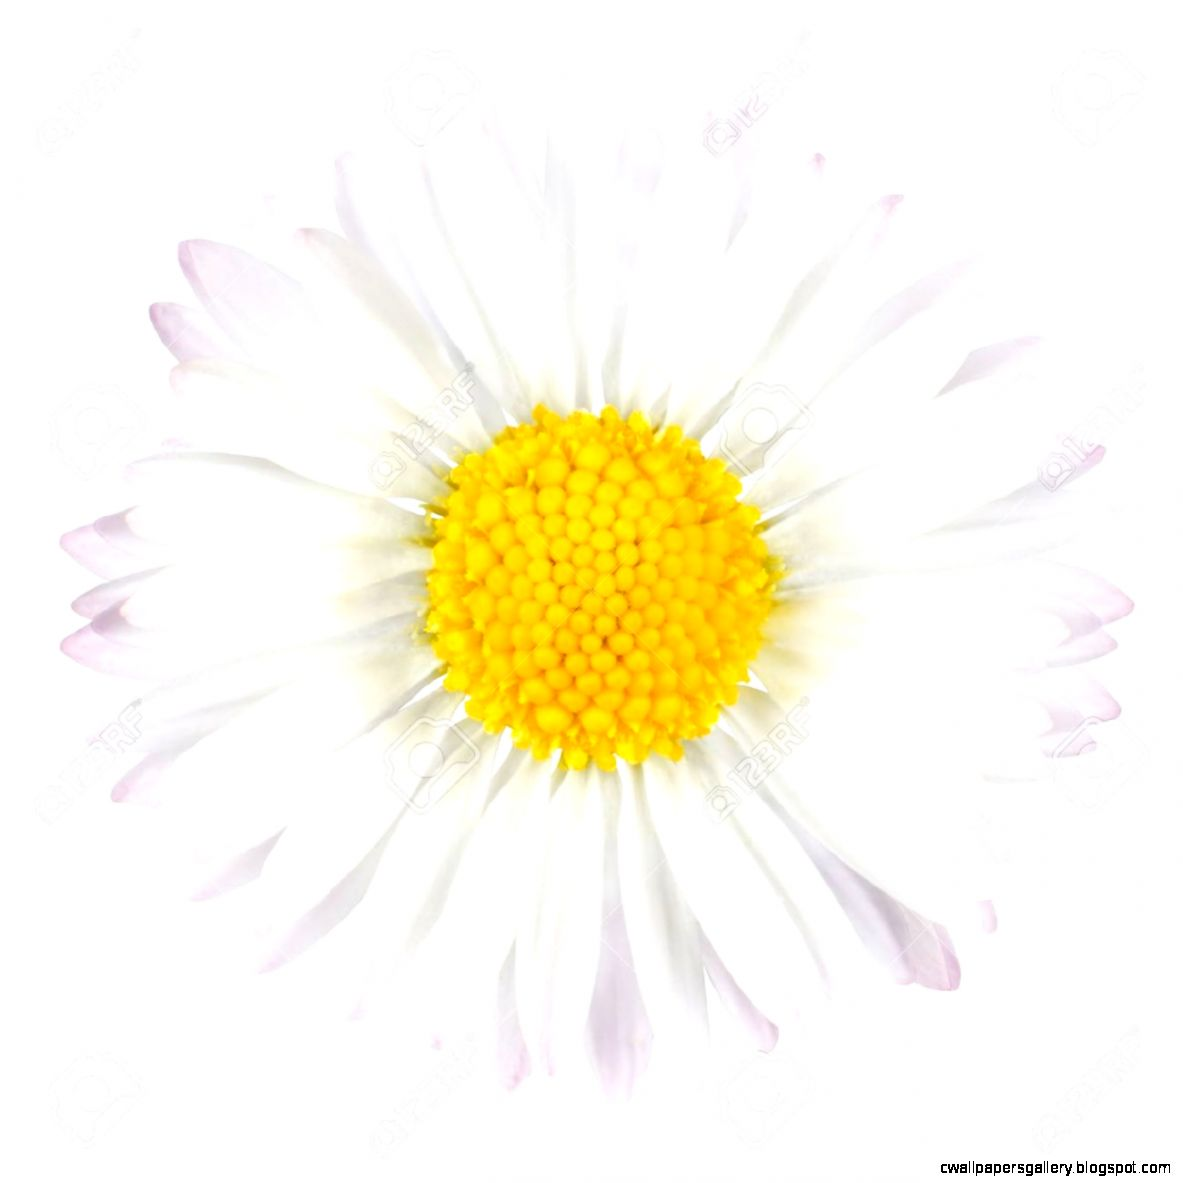 White Daisy Flower With Yellow Center Isolated On White Background